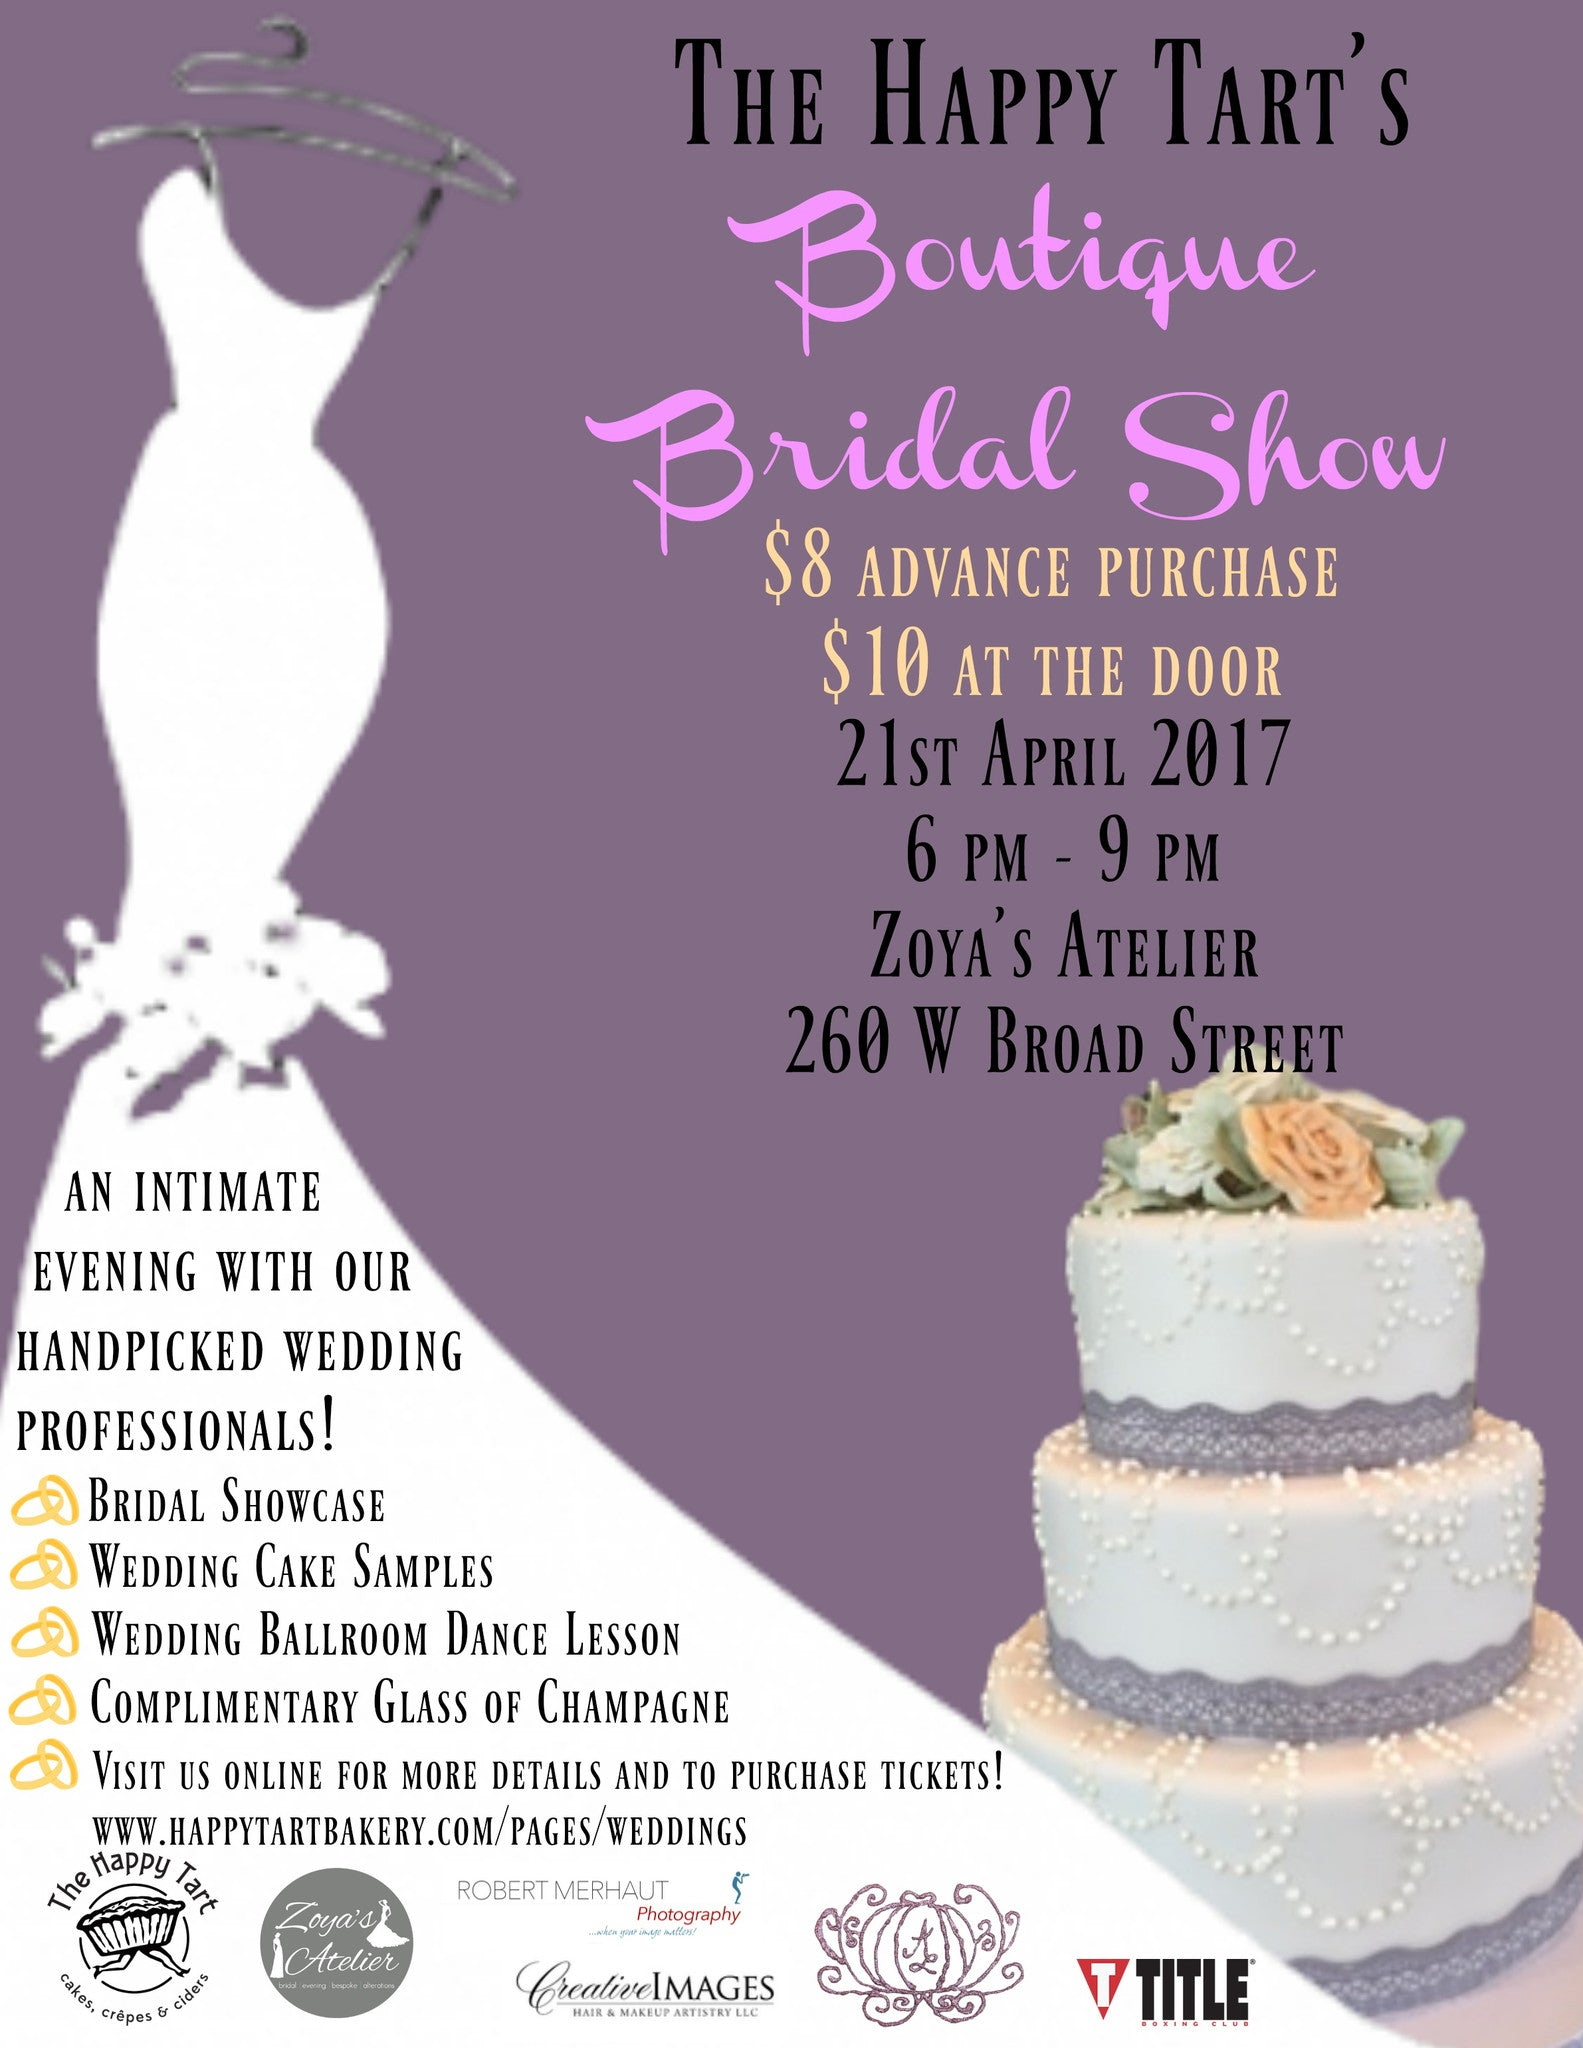 Boutique Bridal Show